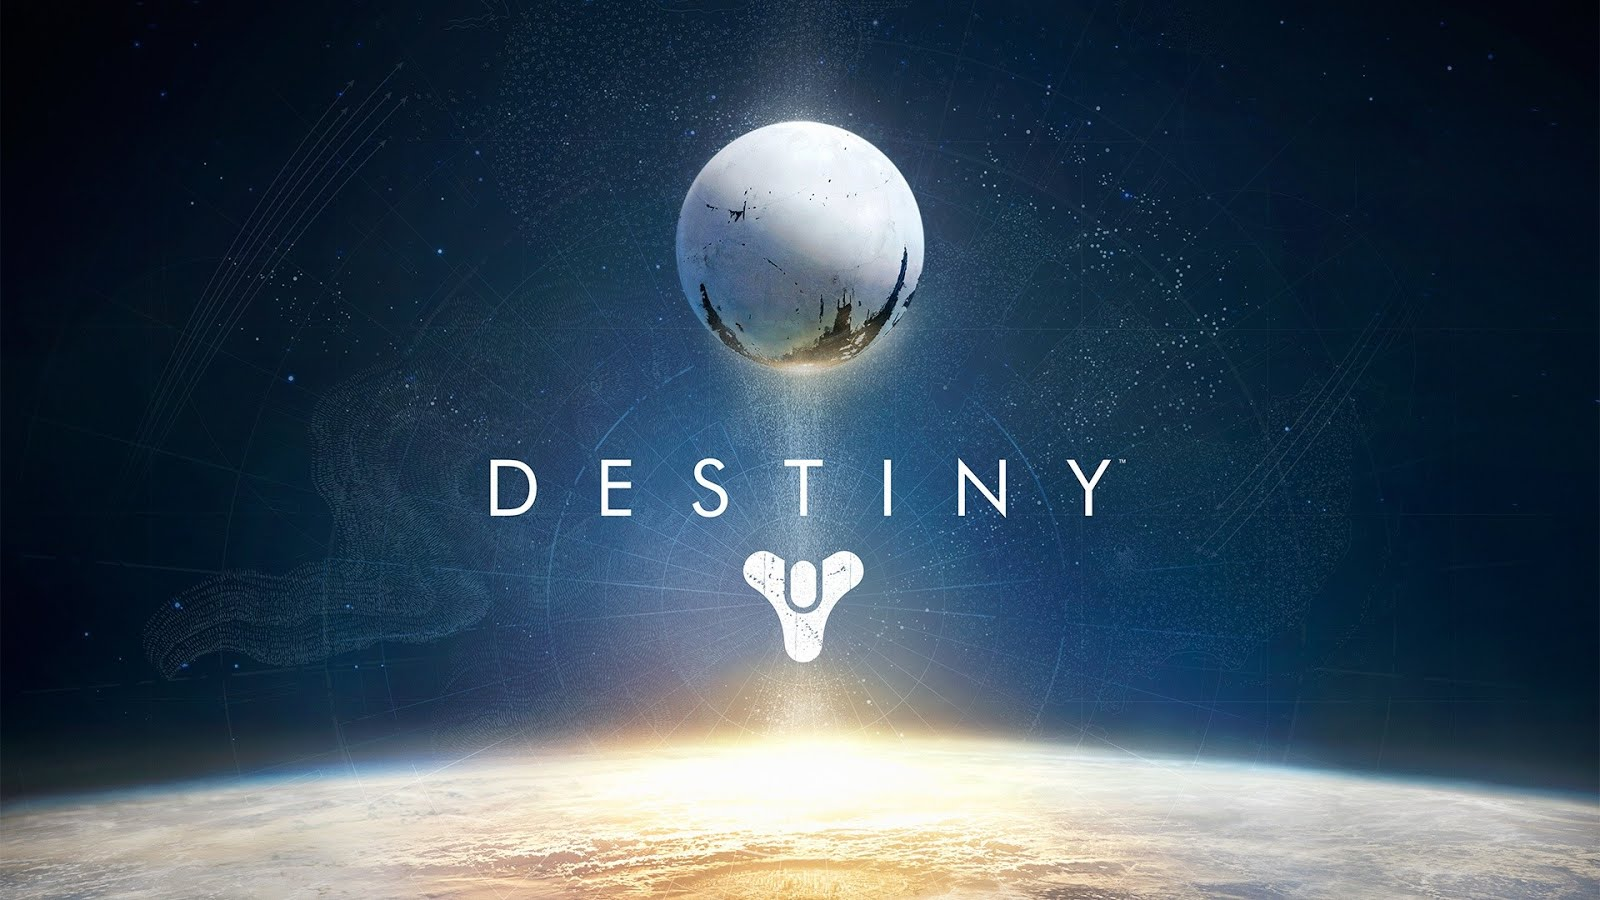 destiny-logo-wallpapers_36550_1920x1080.jpg